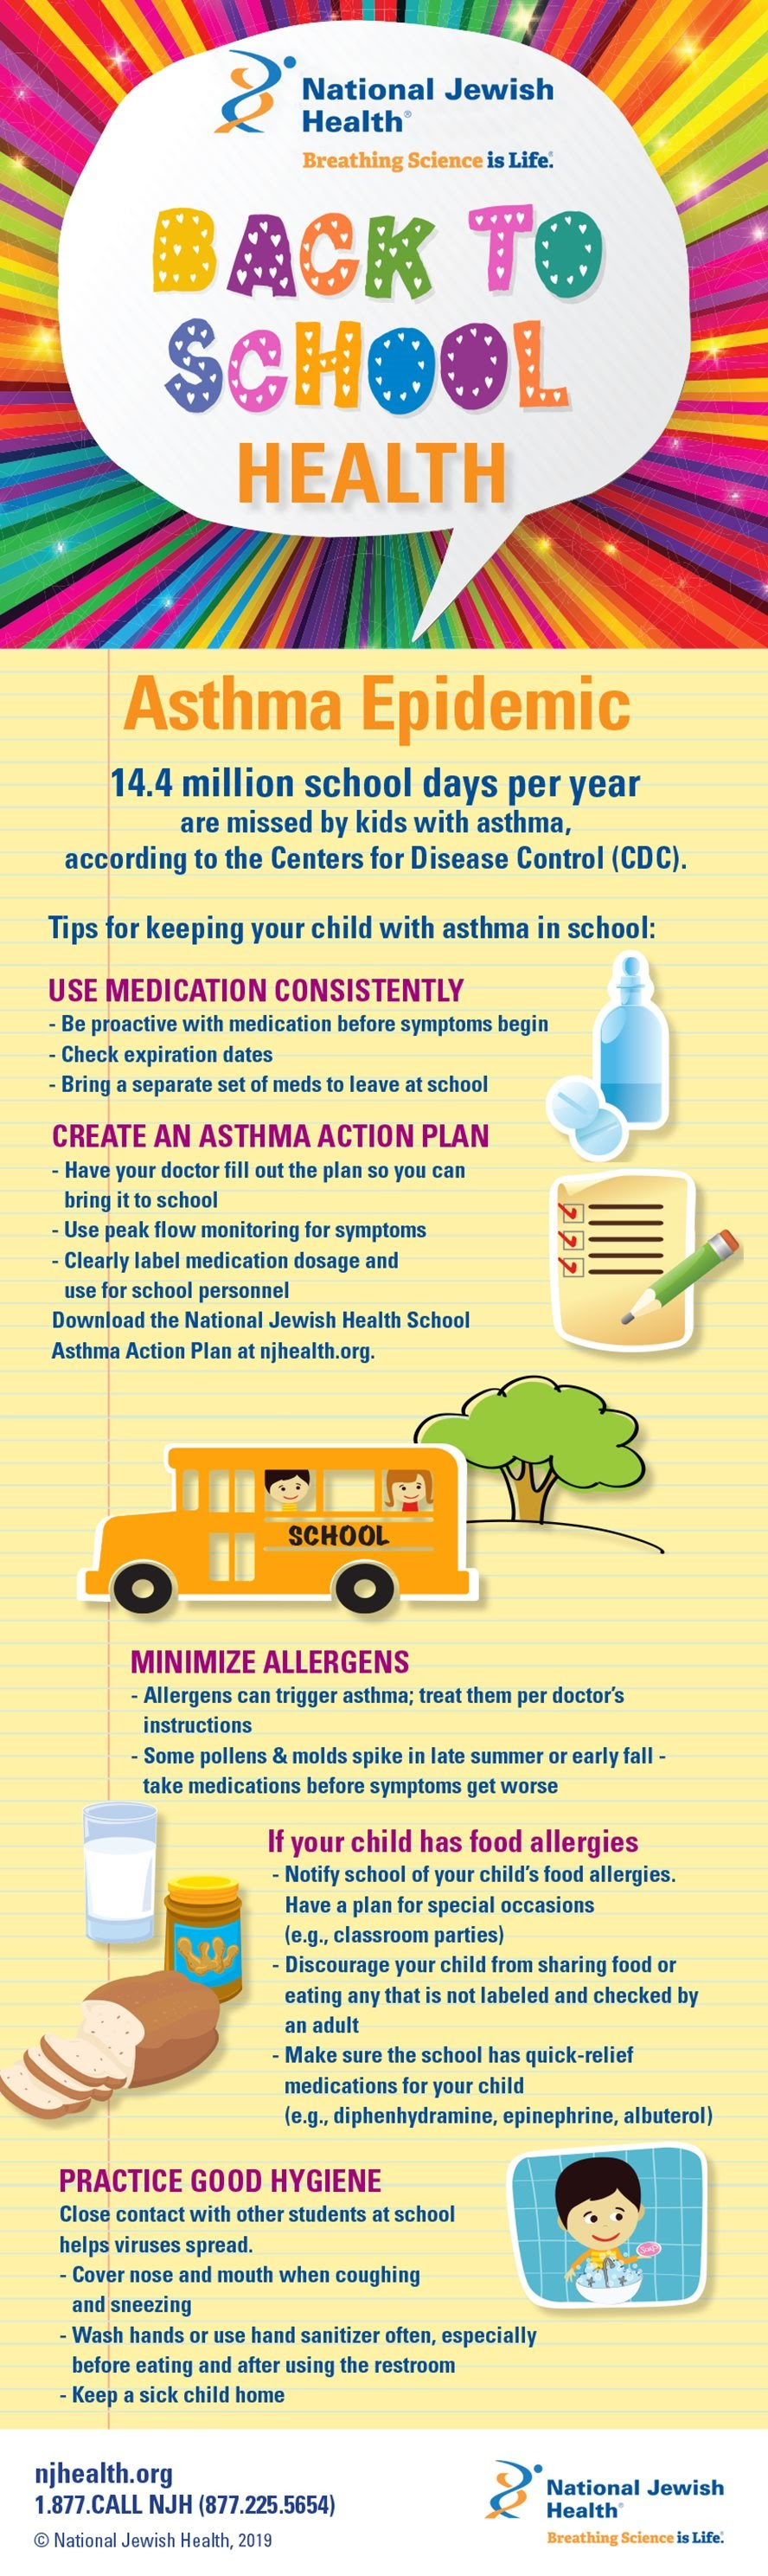 The Asthma Epidemic: Pediatric Asthma And Allergies In School #infographic